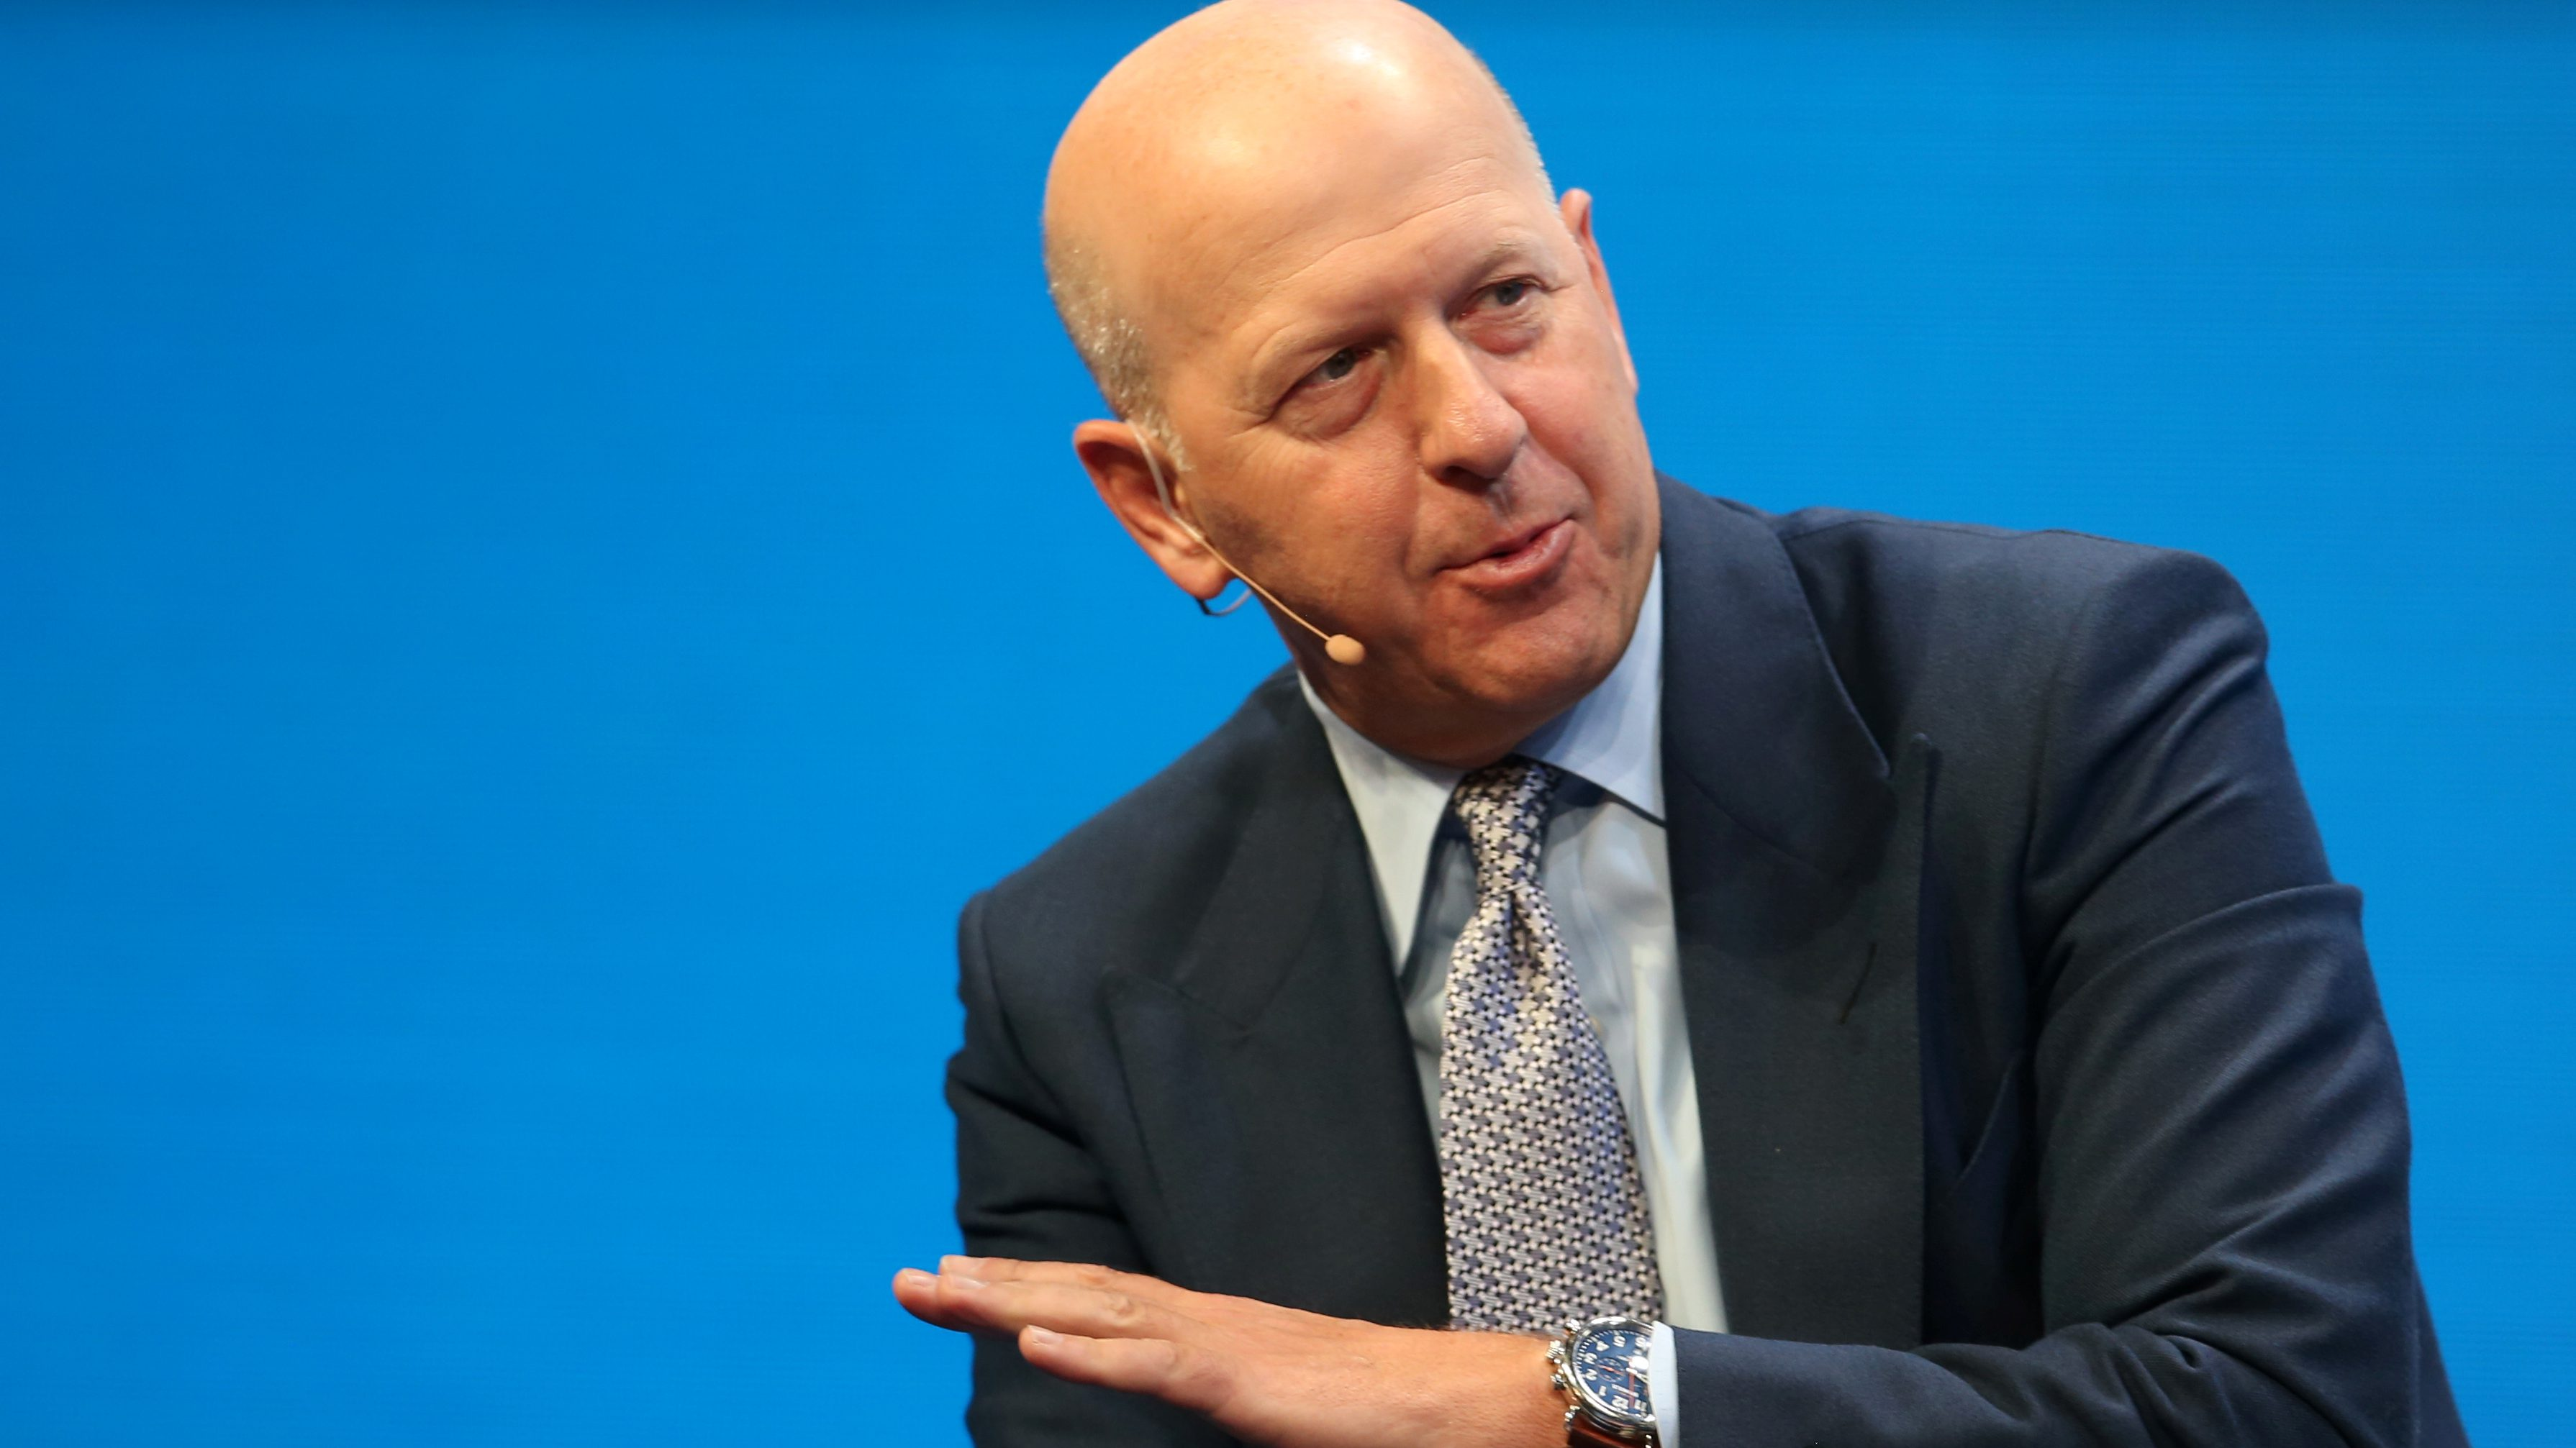 The contest to succeed Goldman Sachs CEO Lloyd Blankfein is